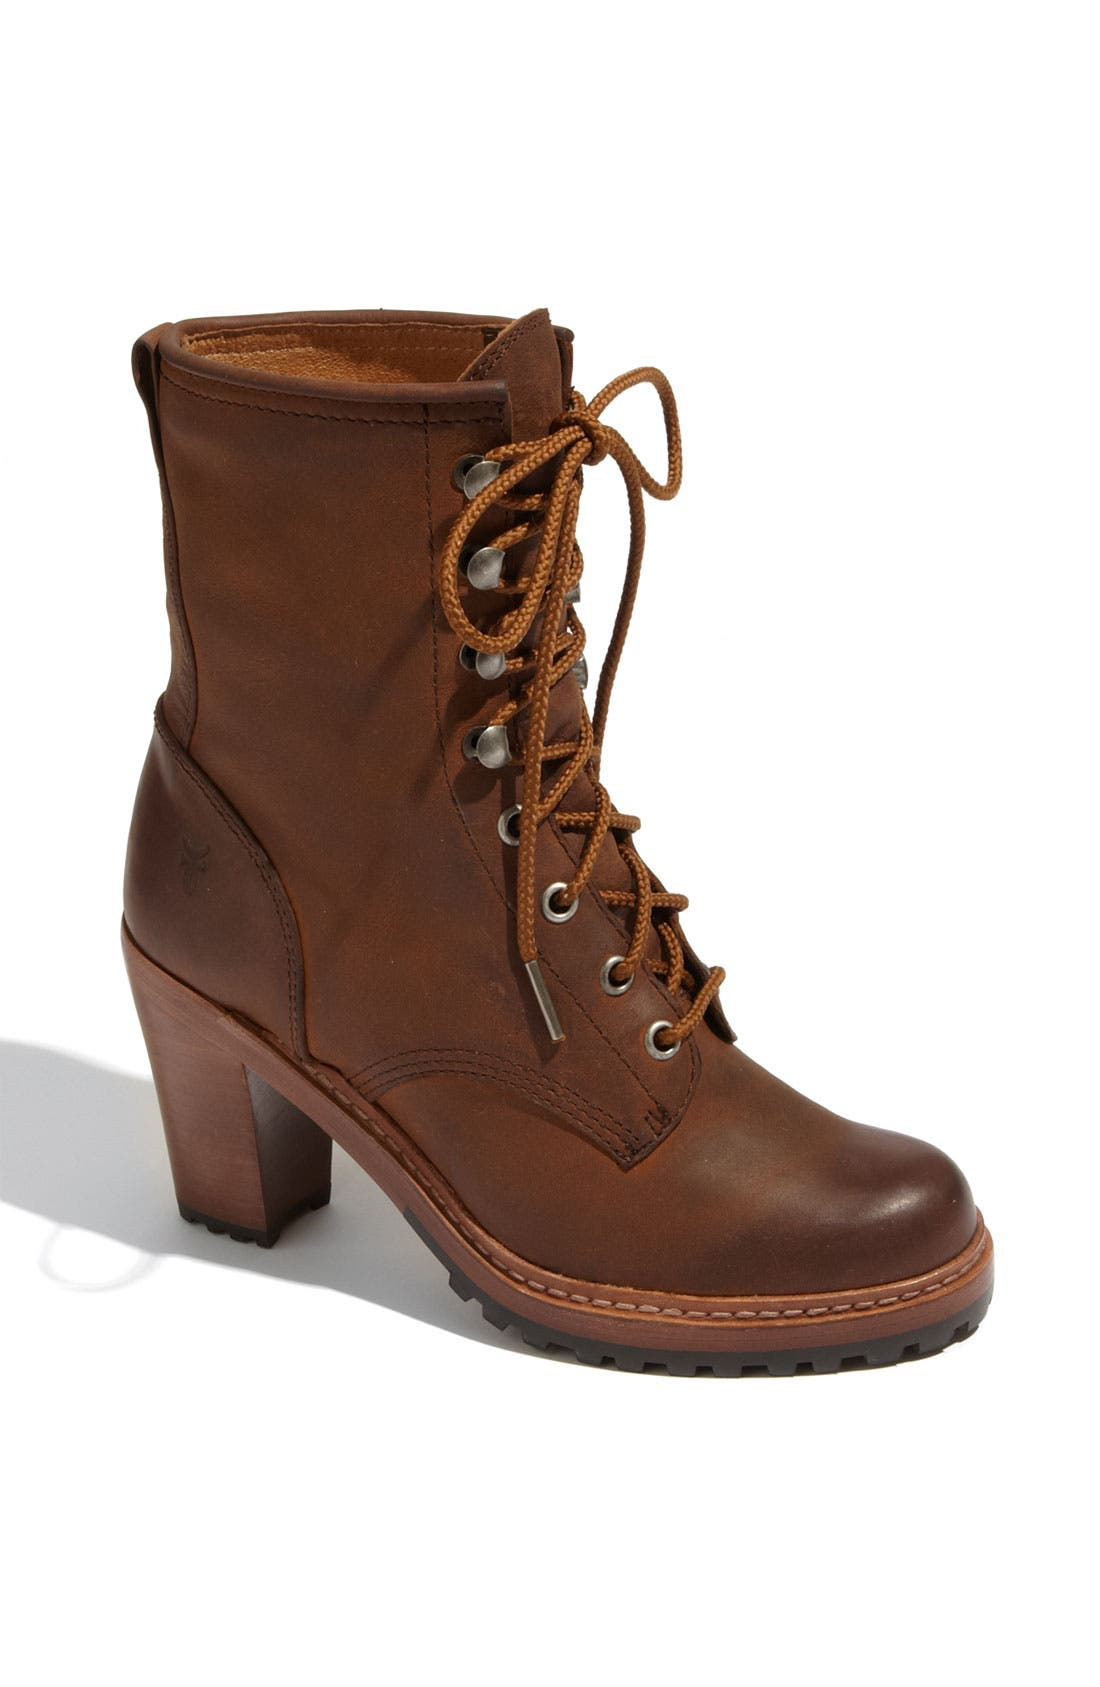 FRYE 'Lucy' Boot, Main, color, 231